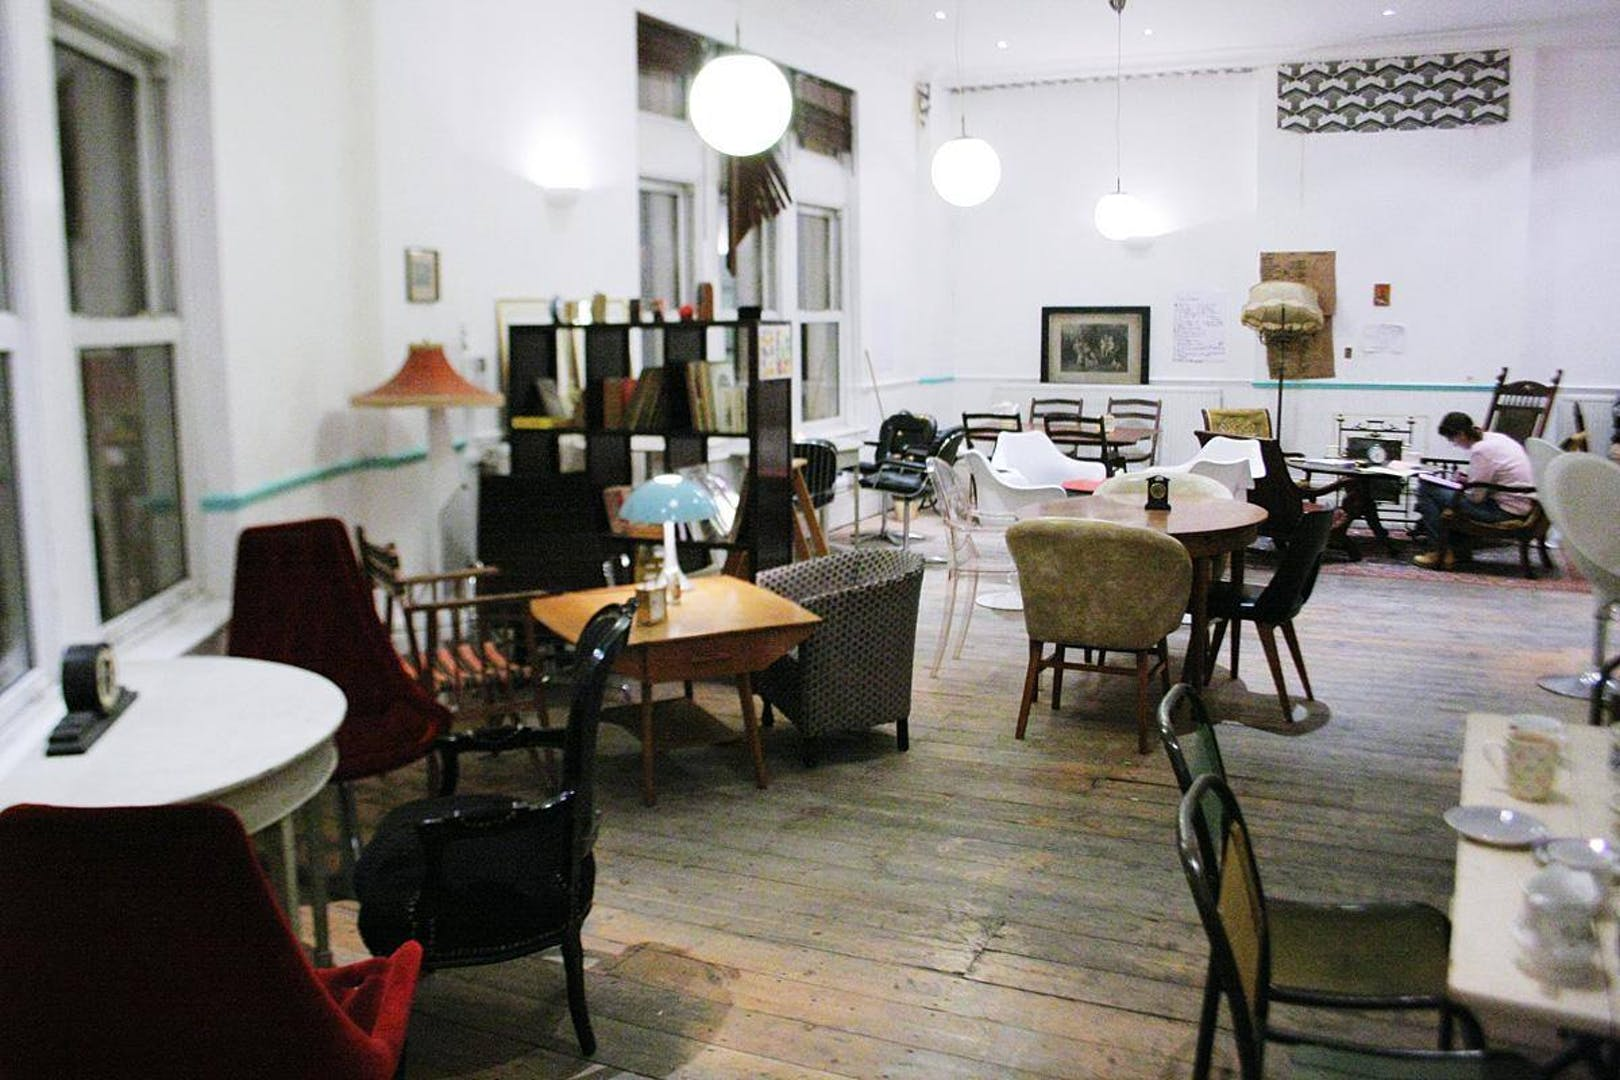 an overview of the freelance cafe called ziferblat The state of new york does not imply approval of the listed destinations, warrant the accuracy of any information set out in those destinations, or endorse any opinions expressed therein.